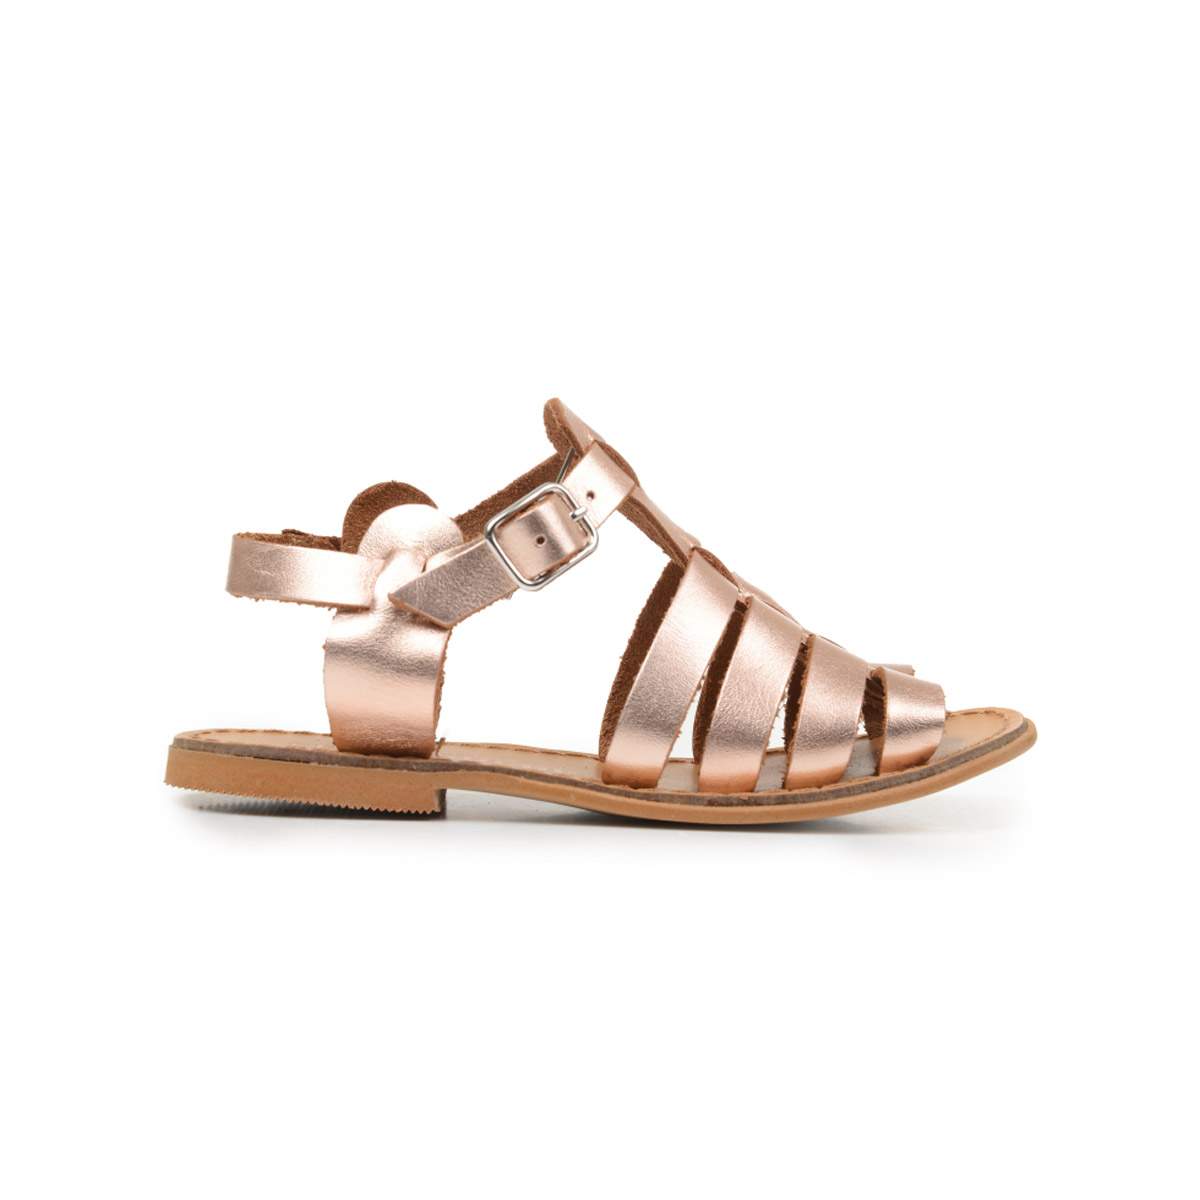 ChildrenChic Strappy Sandal in Rose Gold